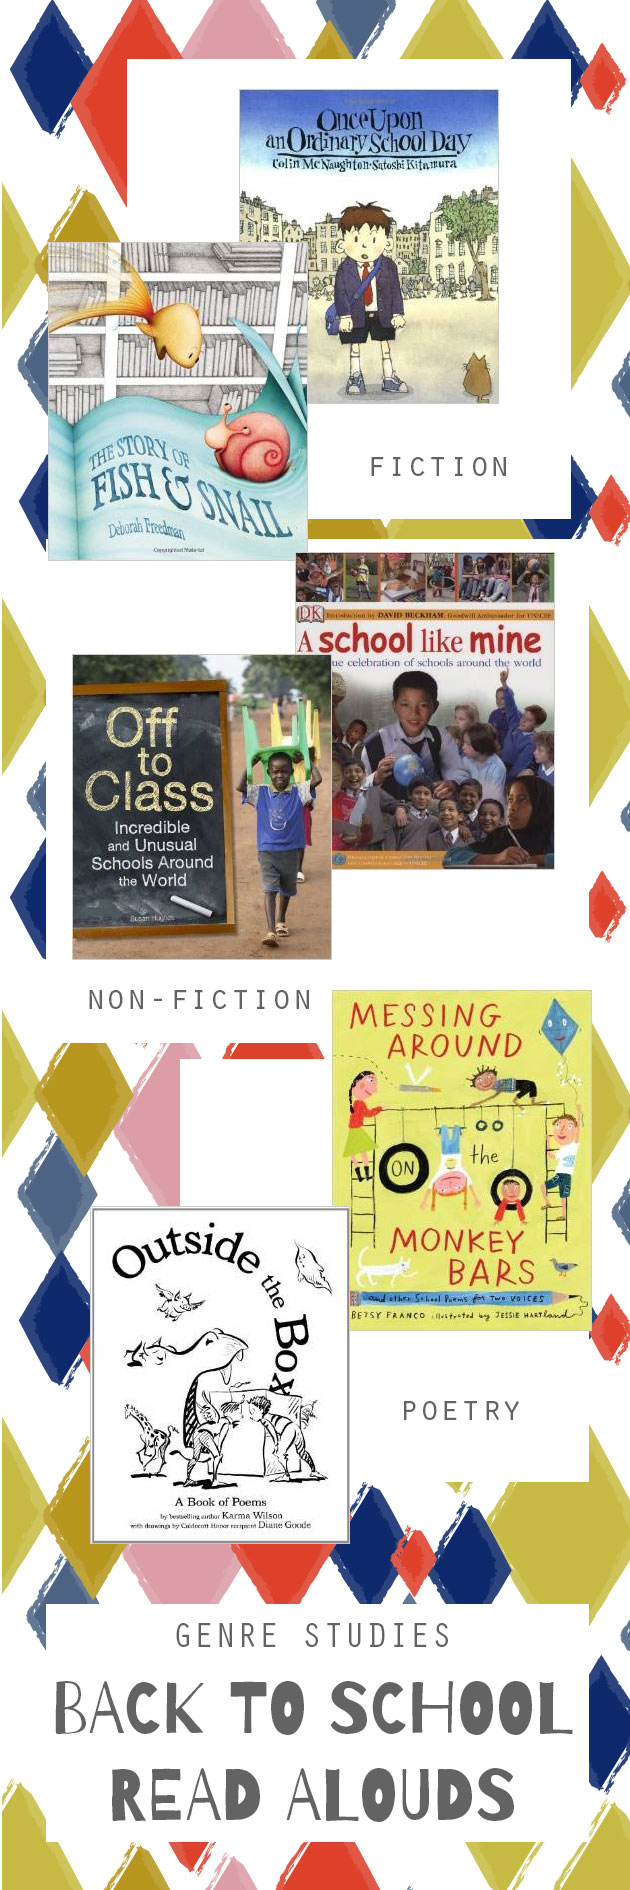 Genre Studies: Back to School Read-Alouds